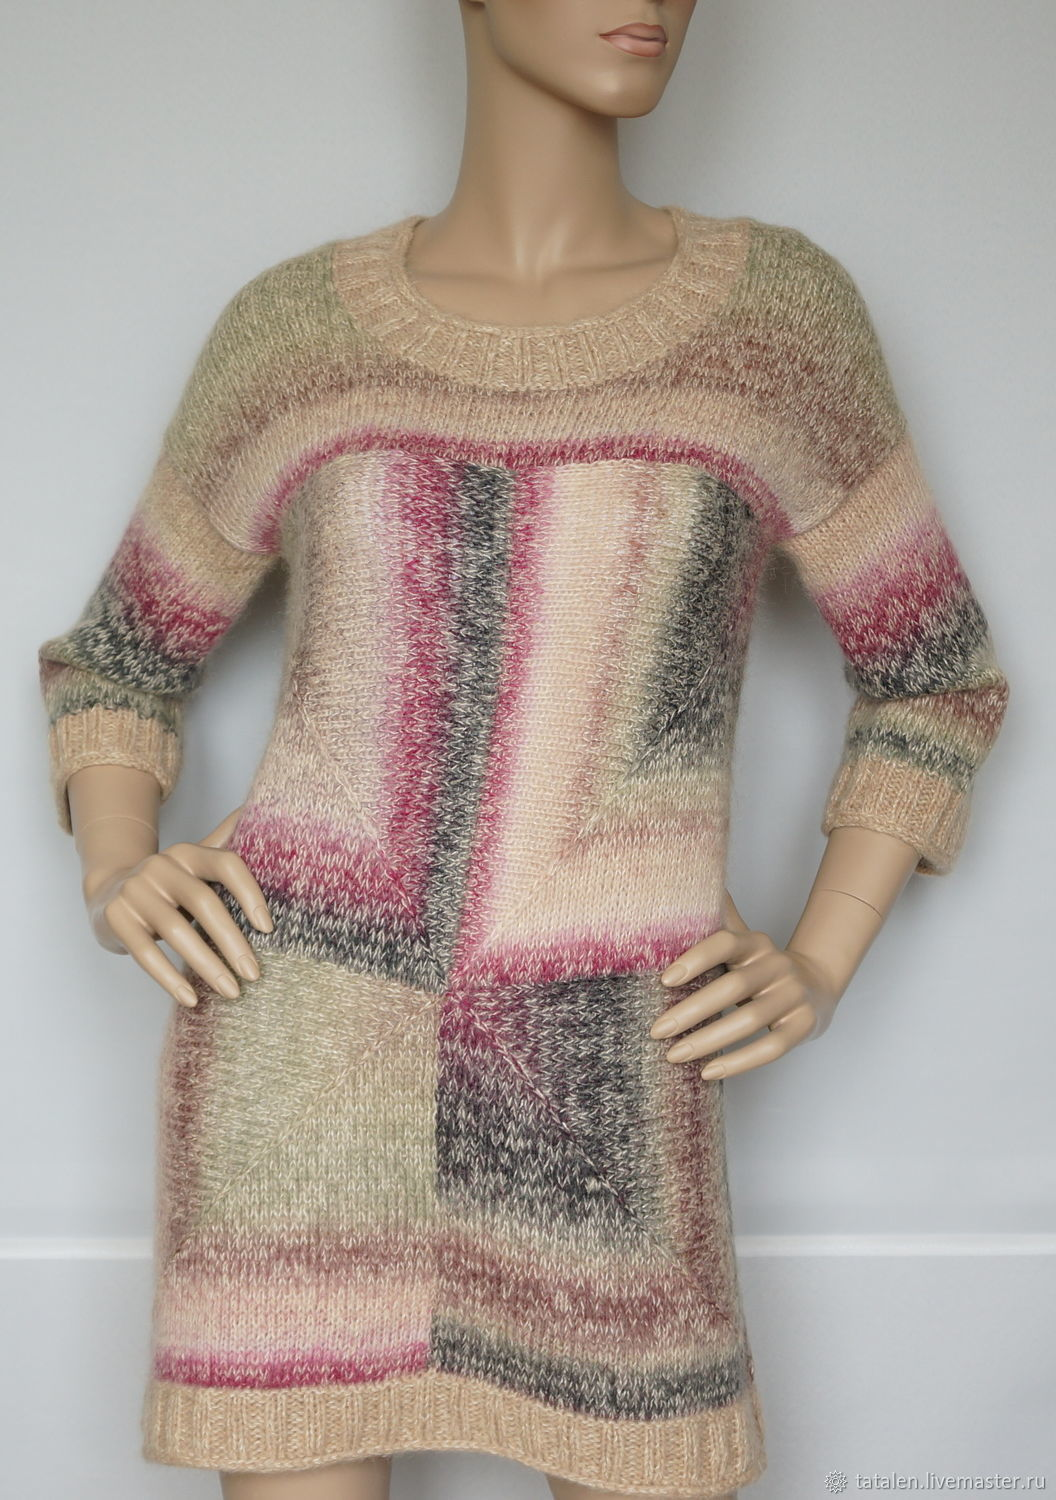 Jumper knitted silk-baby Alpaca 'Cleo', Jumpers, Moscow,  Фото №1